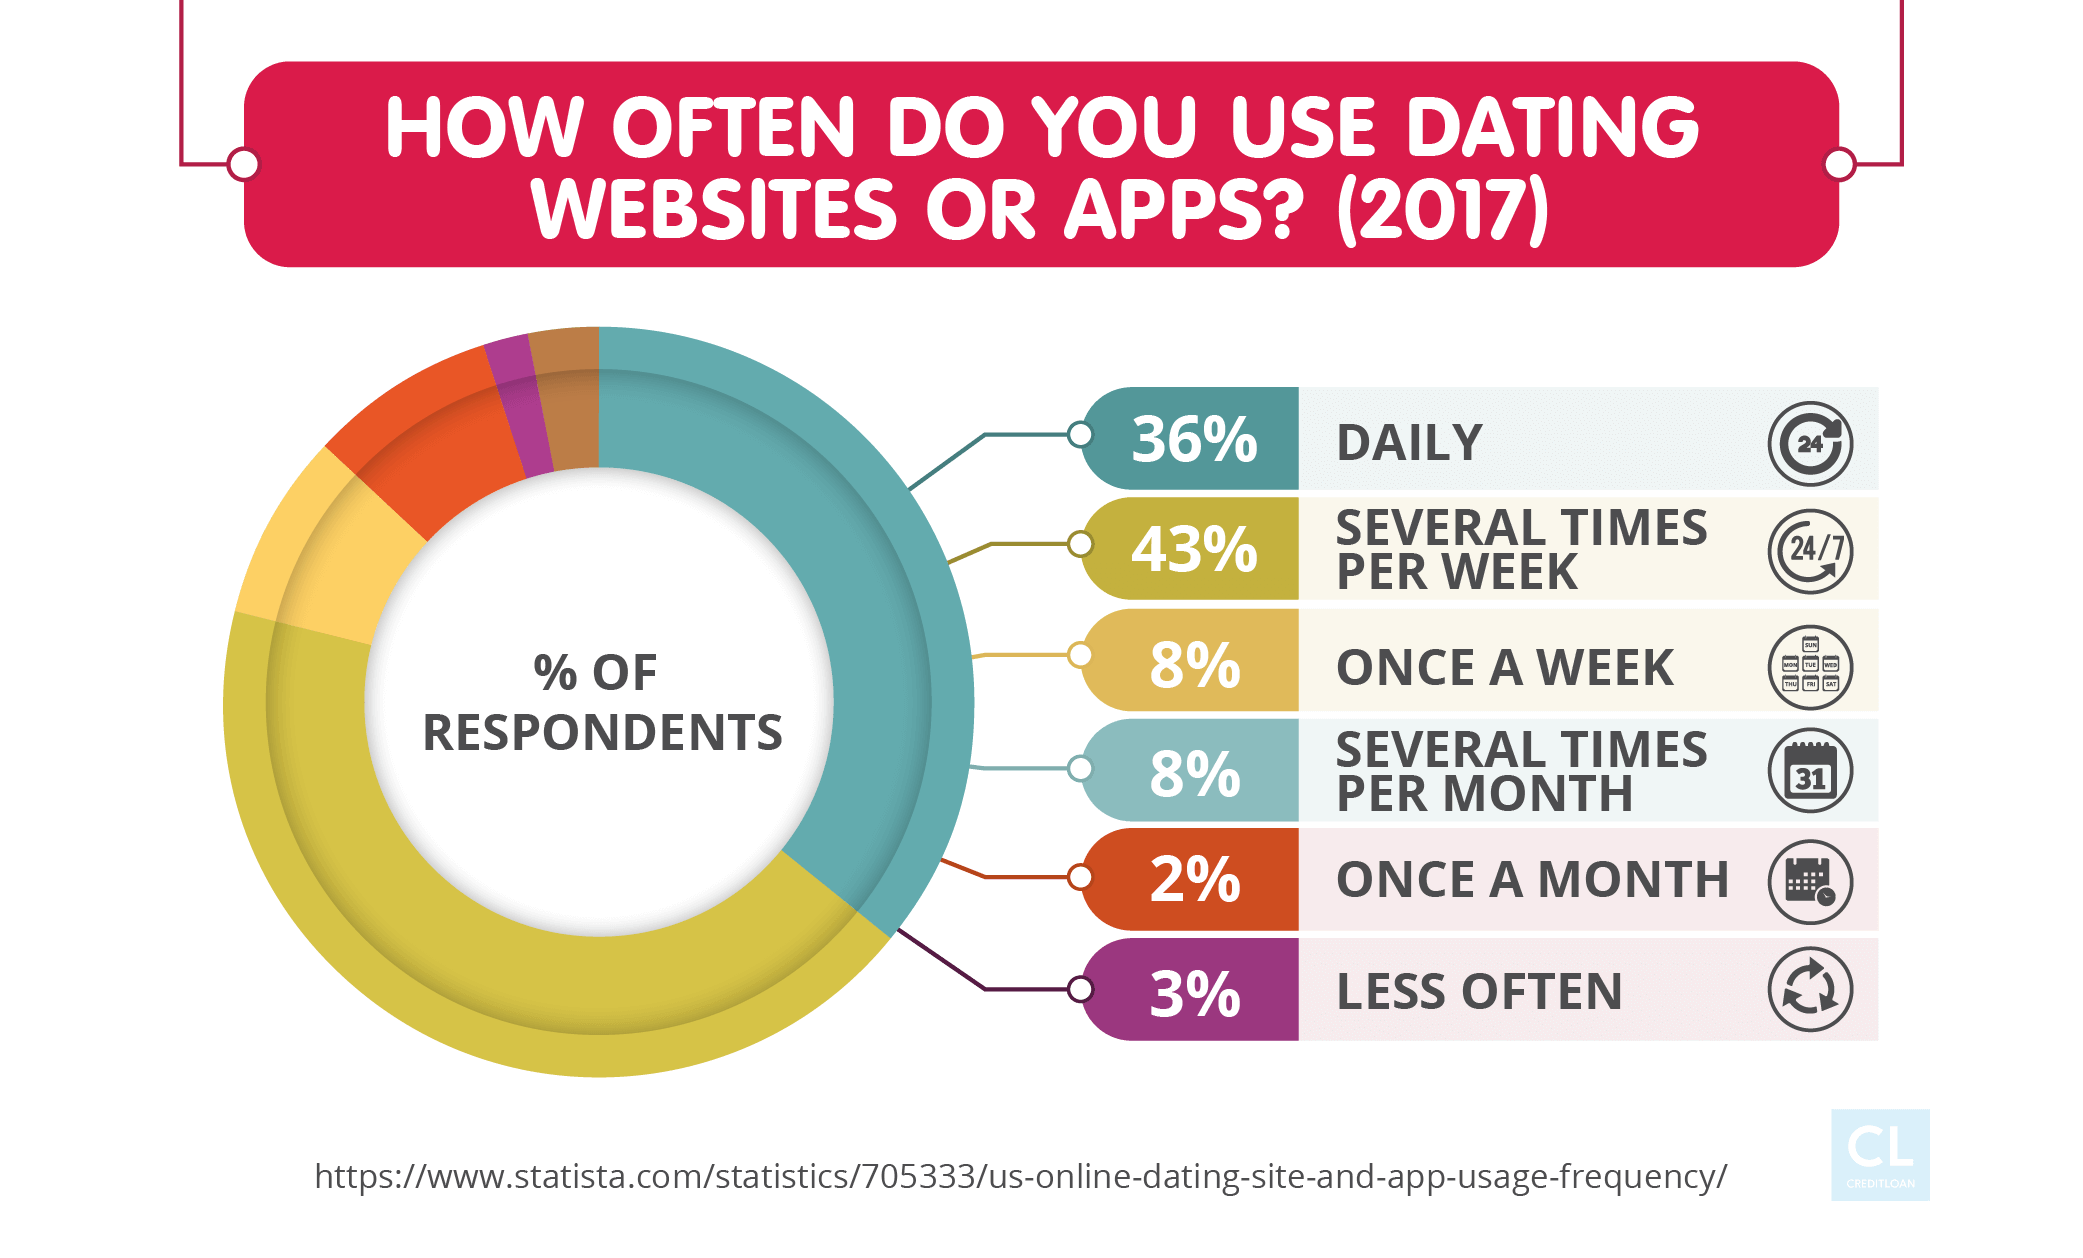 Survey: How Often Do You Use Dating Websites Or Apps?